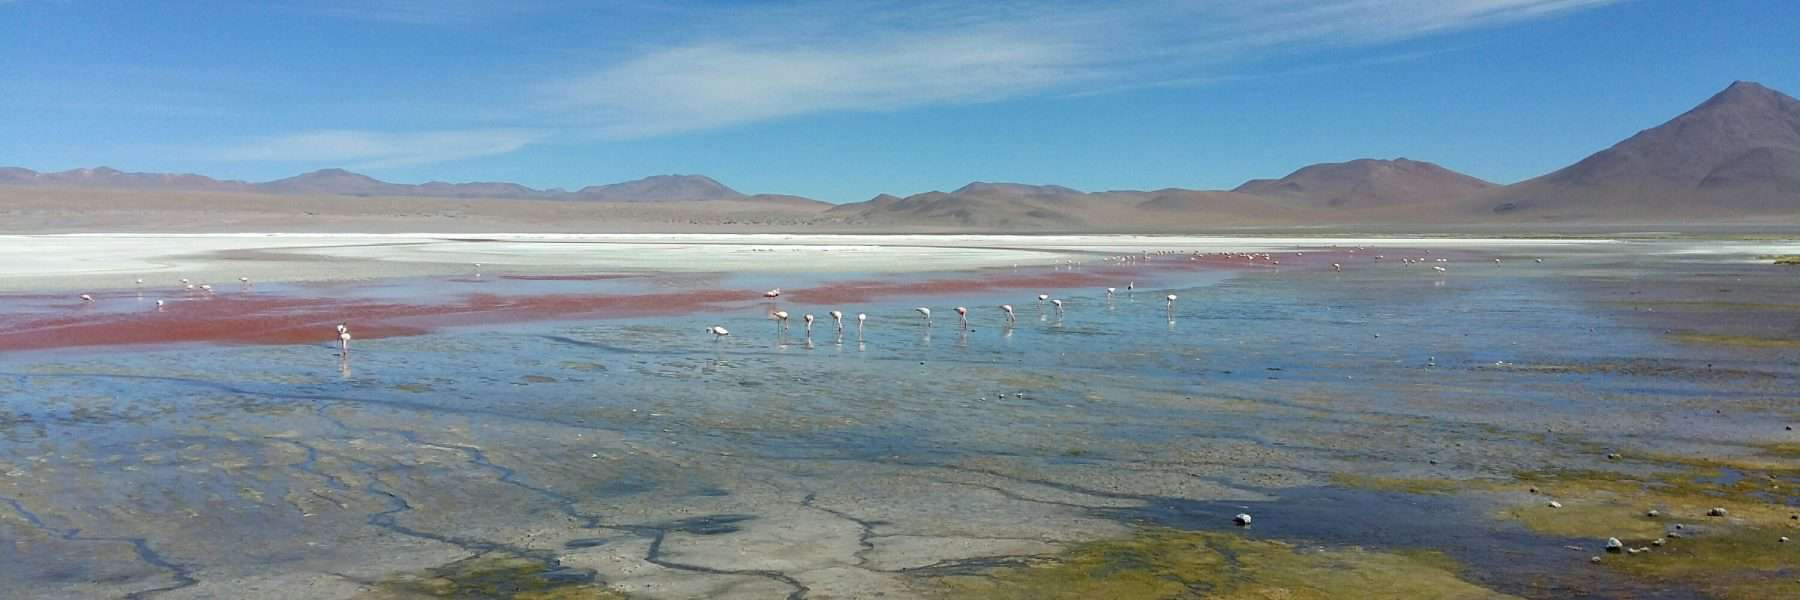 Flamingos in the Bolivian Altiplano near Uyuni, Bolivia